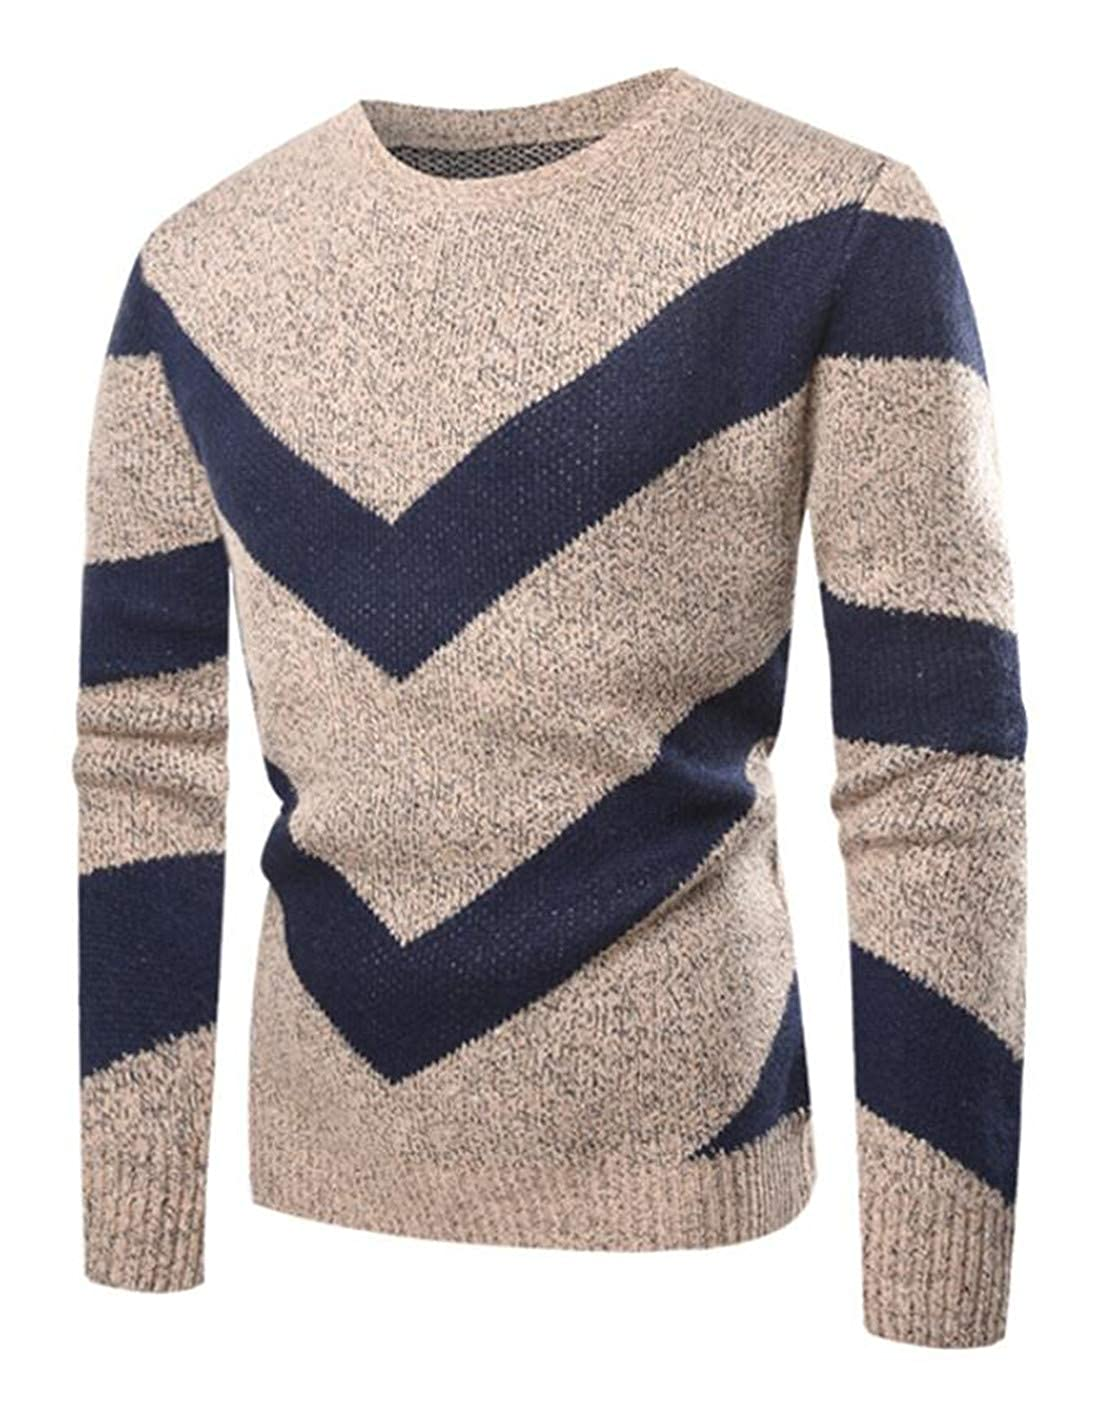 UUYUK Men 3D Hollow Out Crew Neck Contrast Color Pullover Sweaters